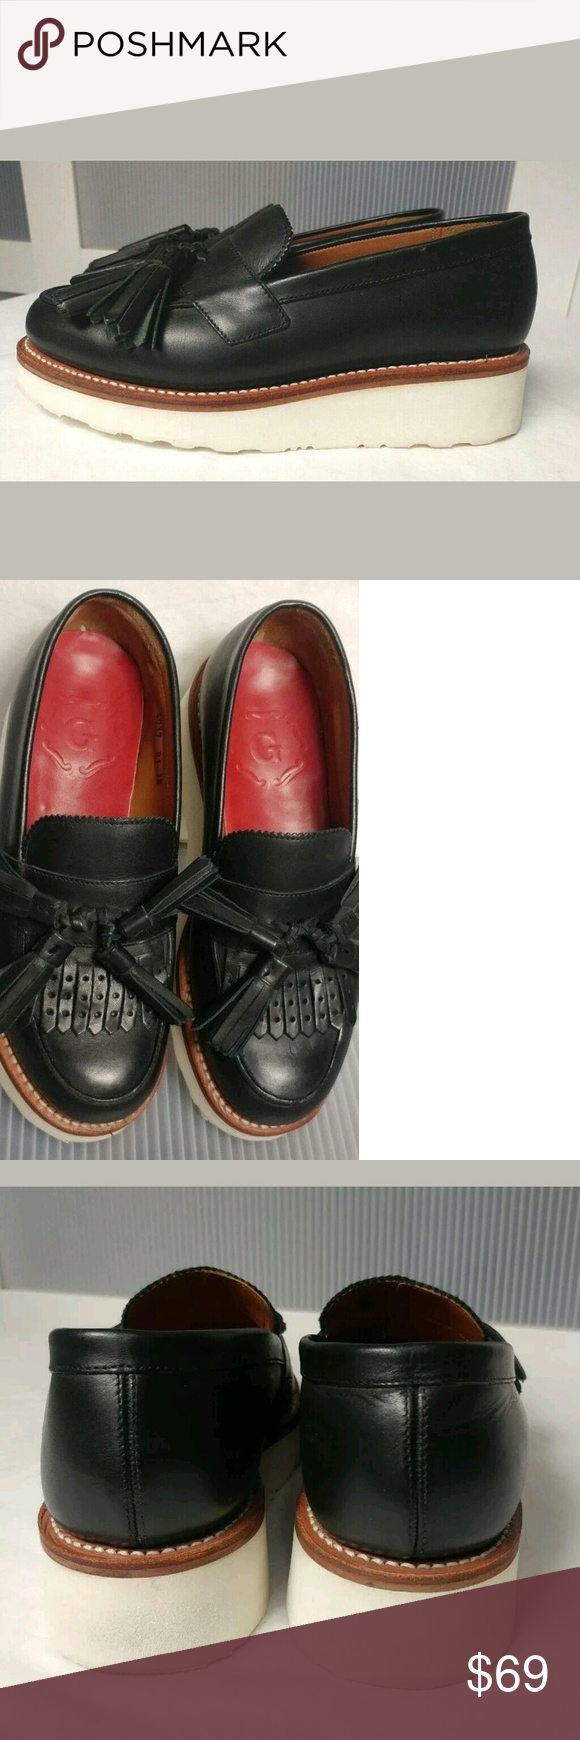 a016a30606d GRENSON Juno Leather Frill Loafers UK(Grenson) 3.5 GRENSON Juno Leather  Frill Loafers UK